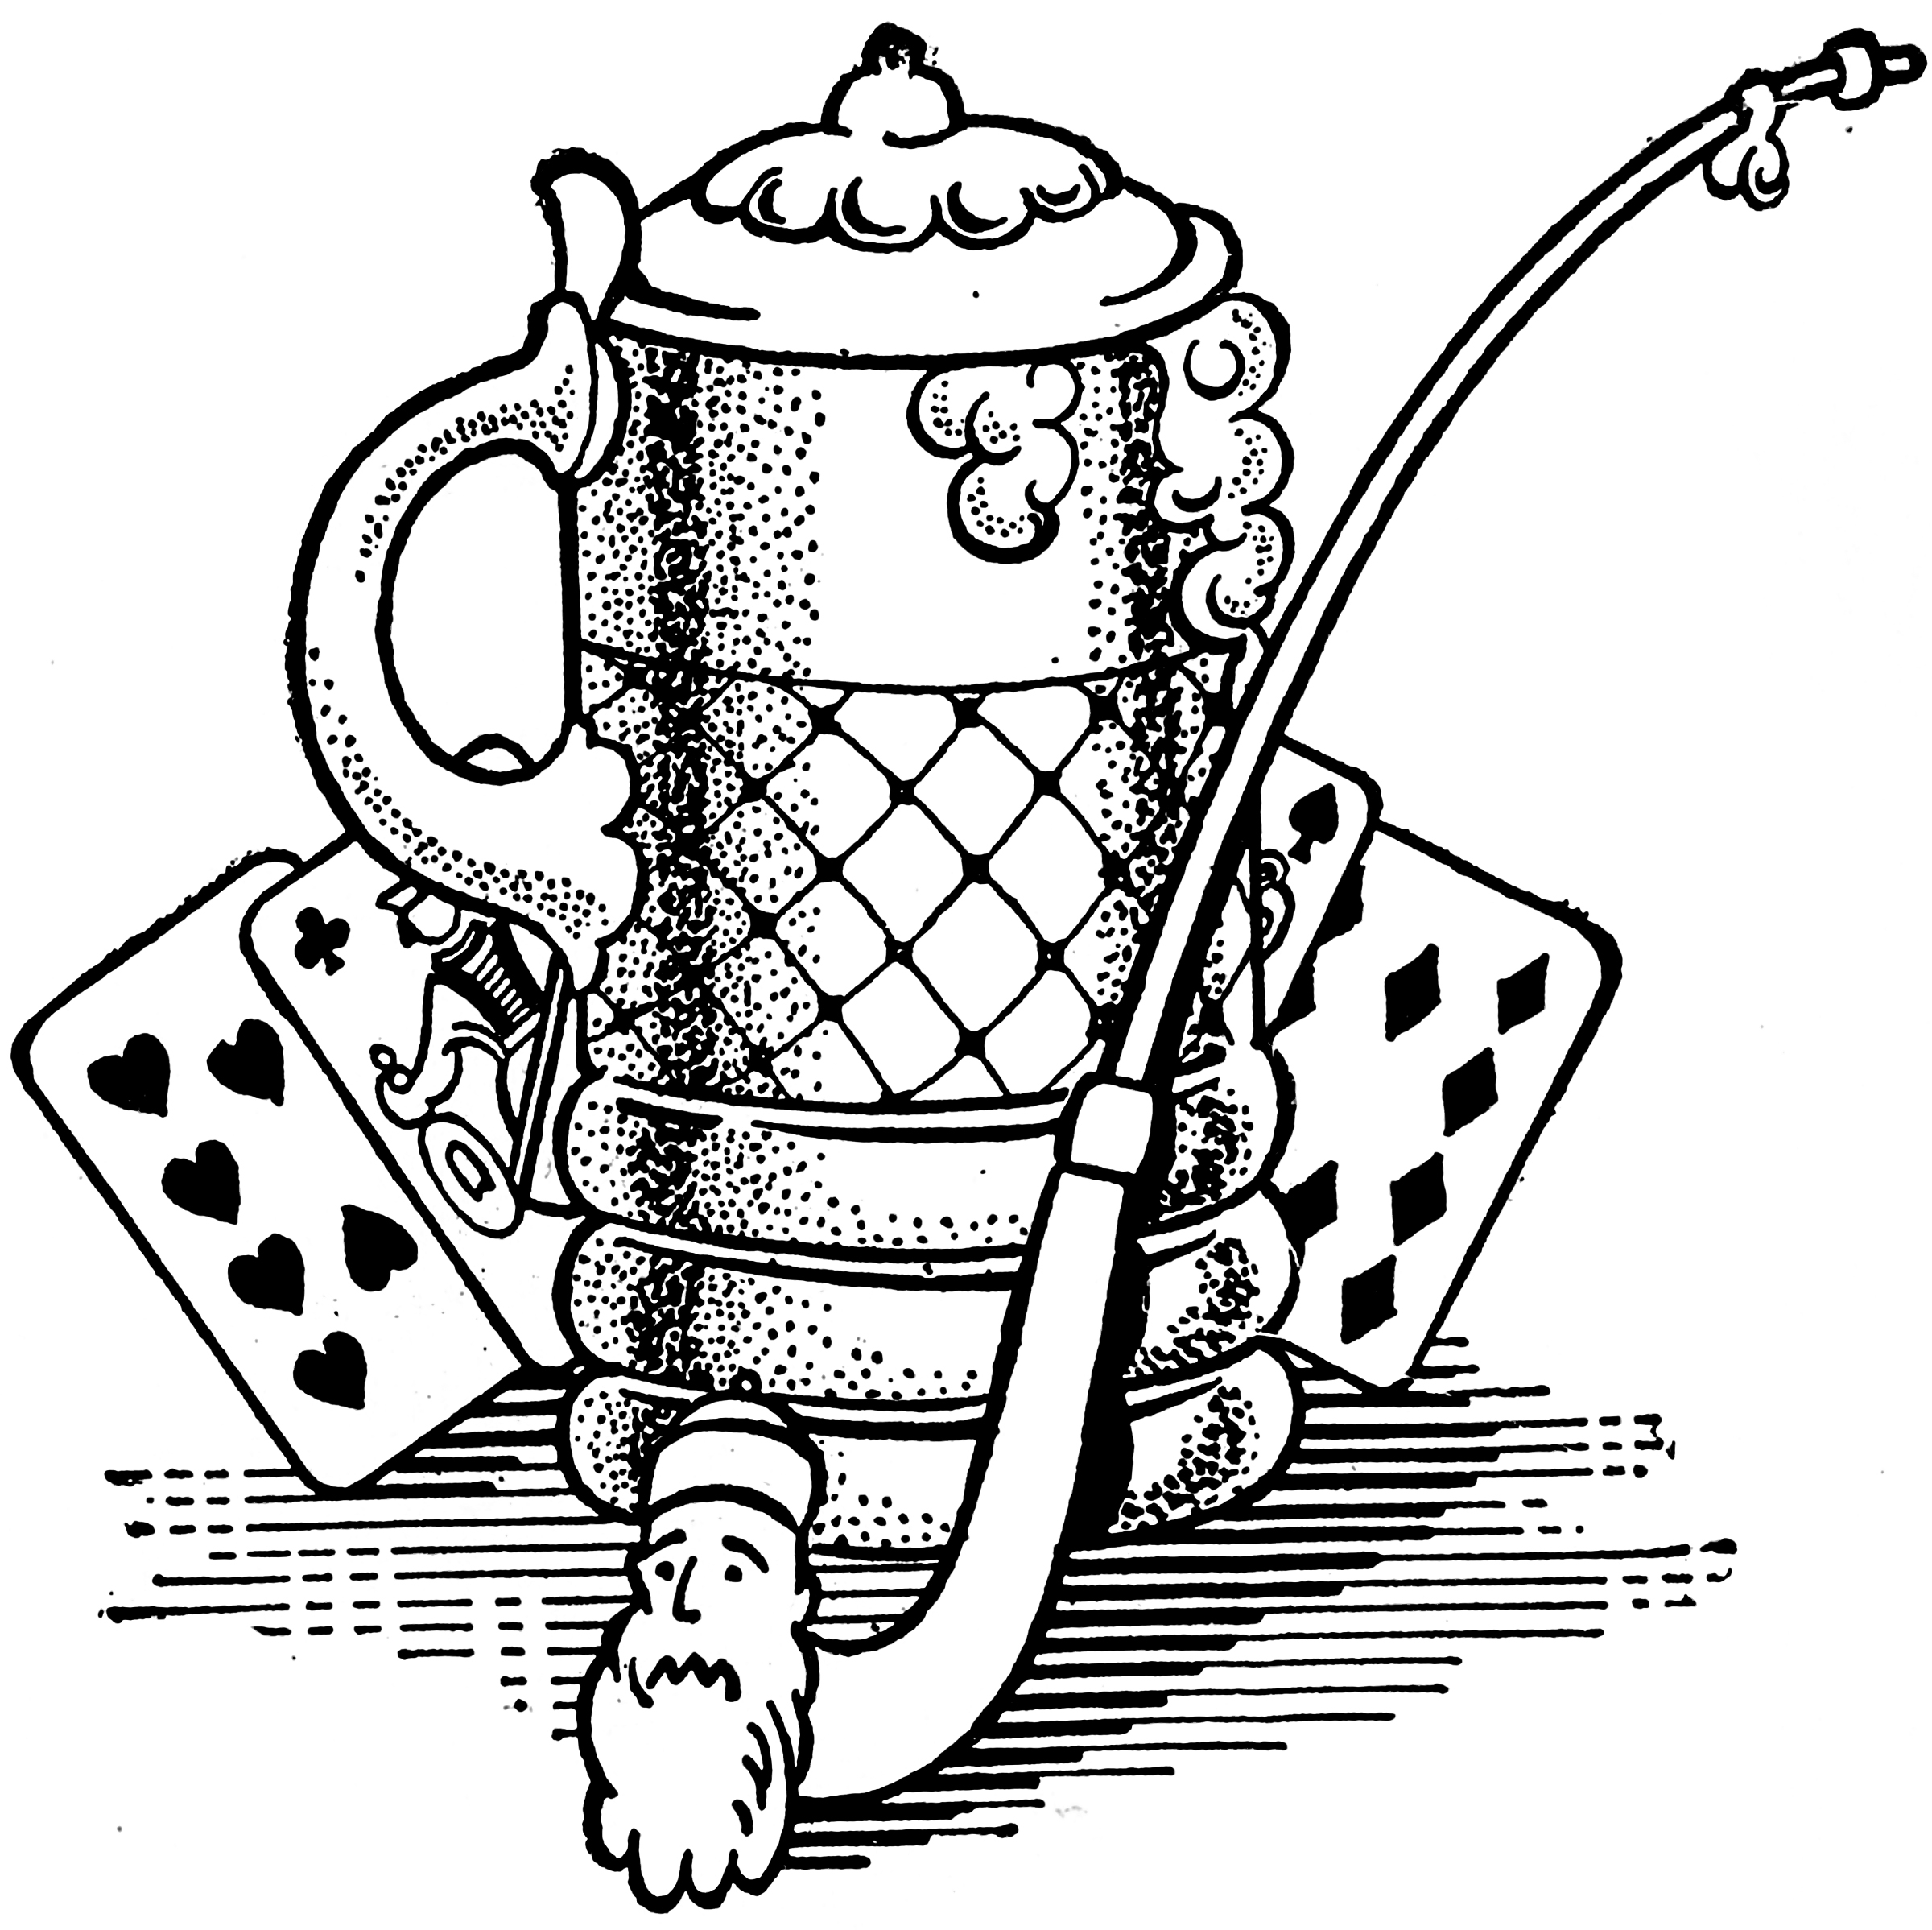 2400x2397 Black And White Beer Stein And Pipe Image!